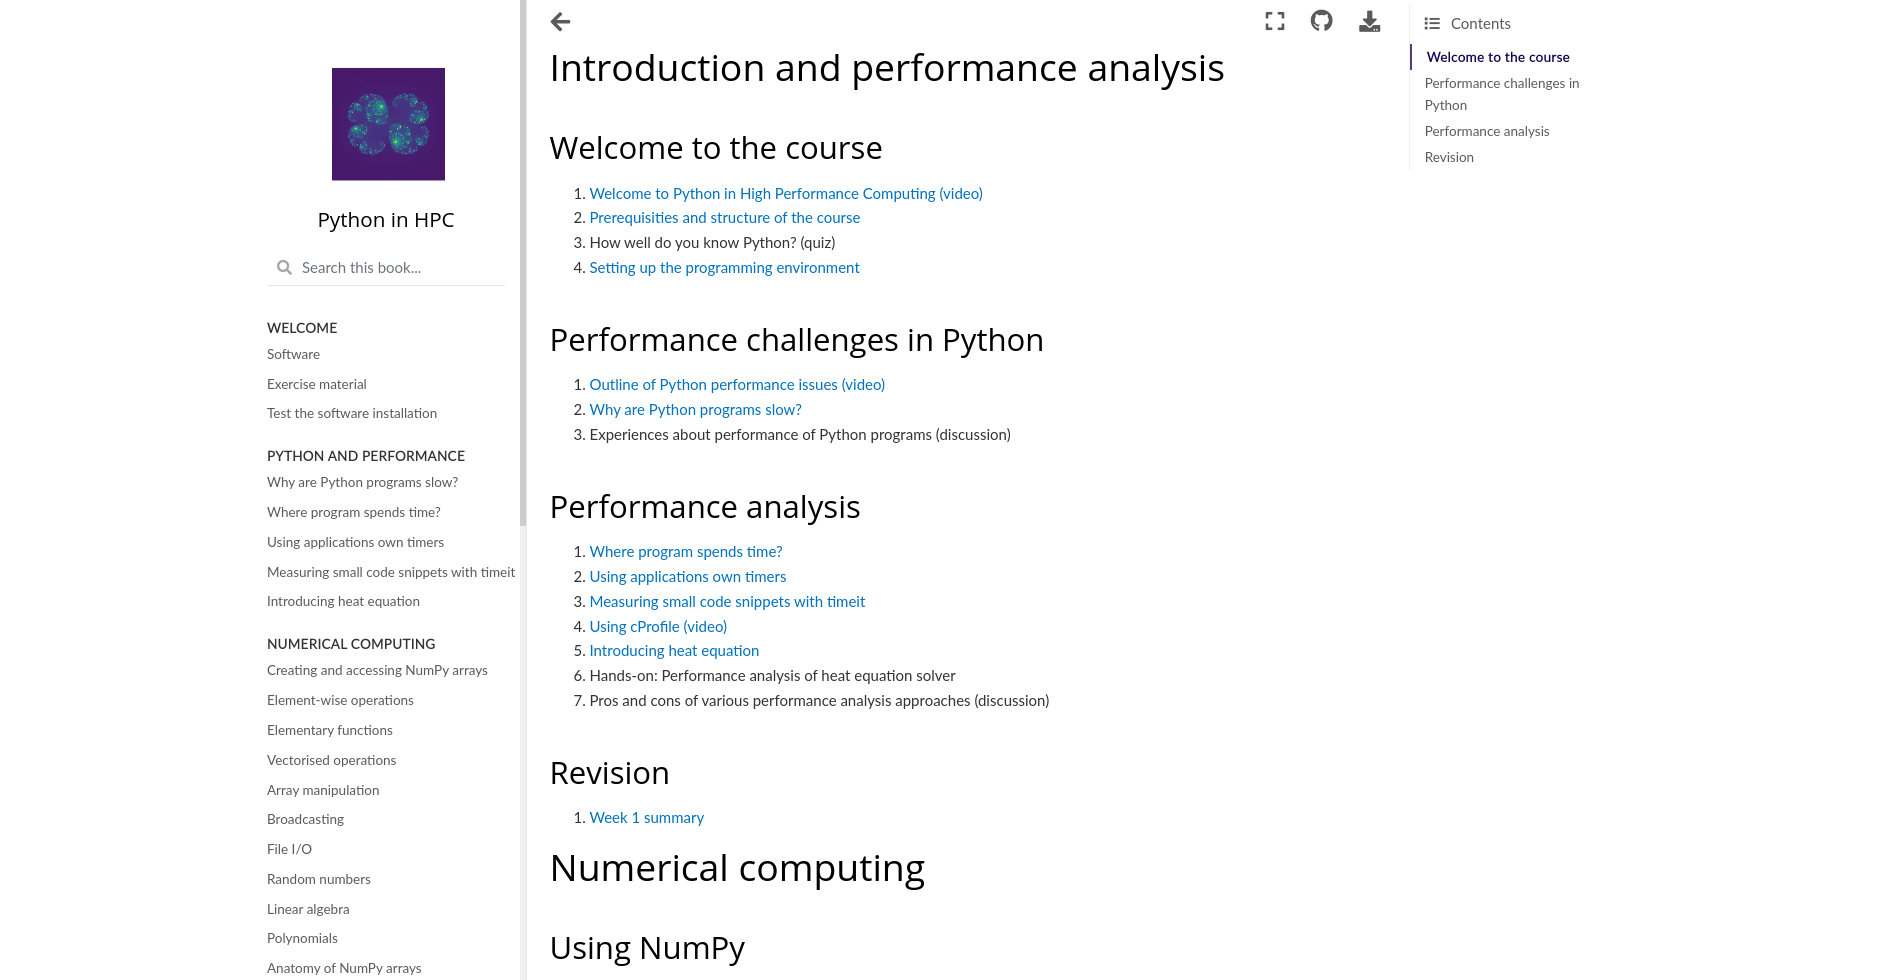 Screenshot_2020-09-23 Introduction and performance analysis — Python in HPC http 0 0 0 0 8000